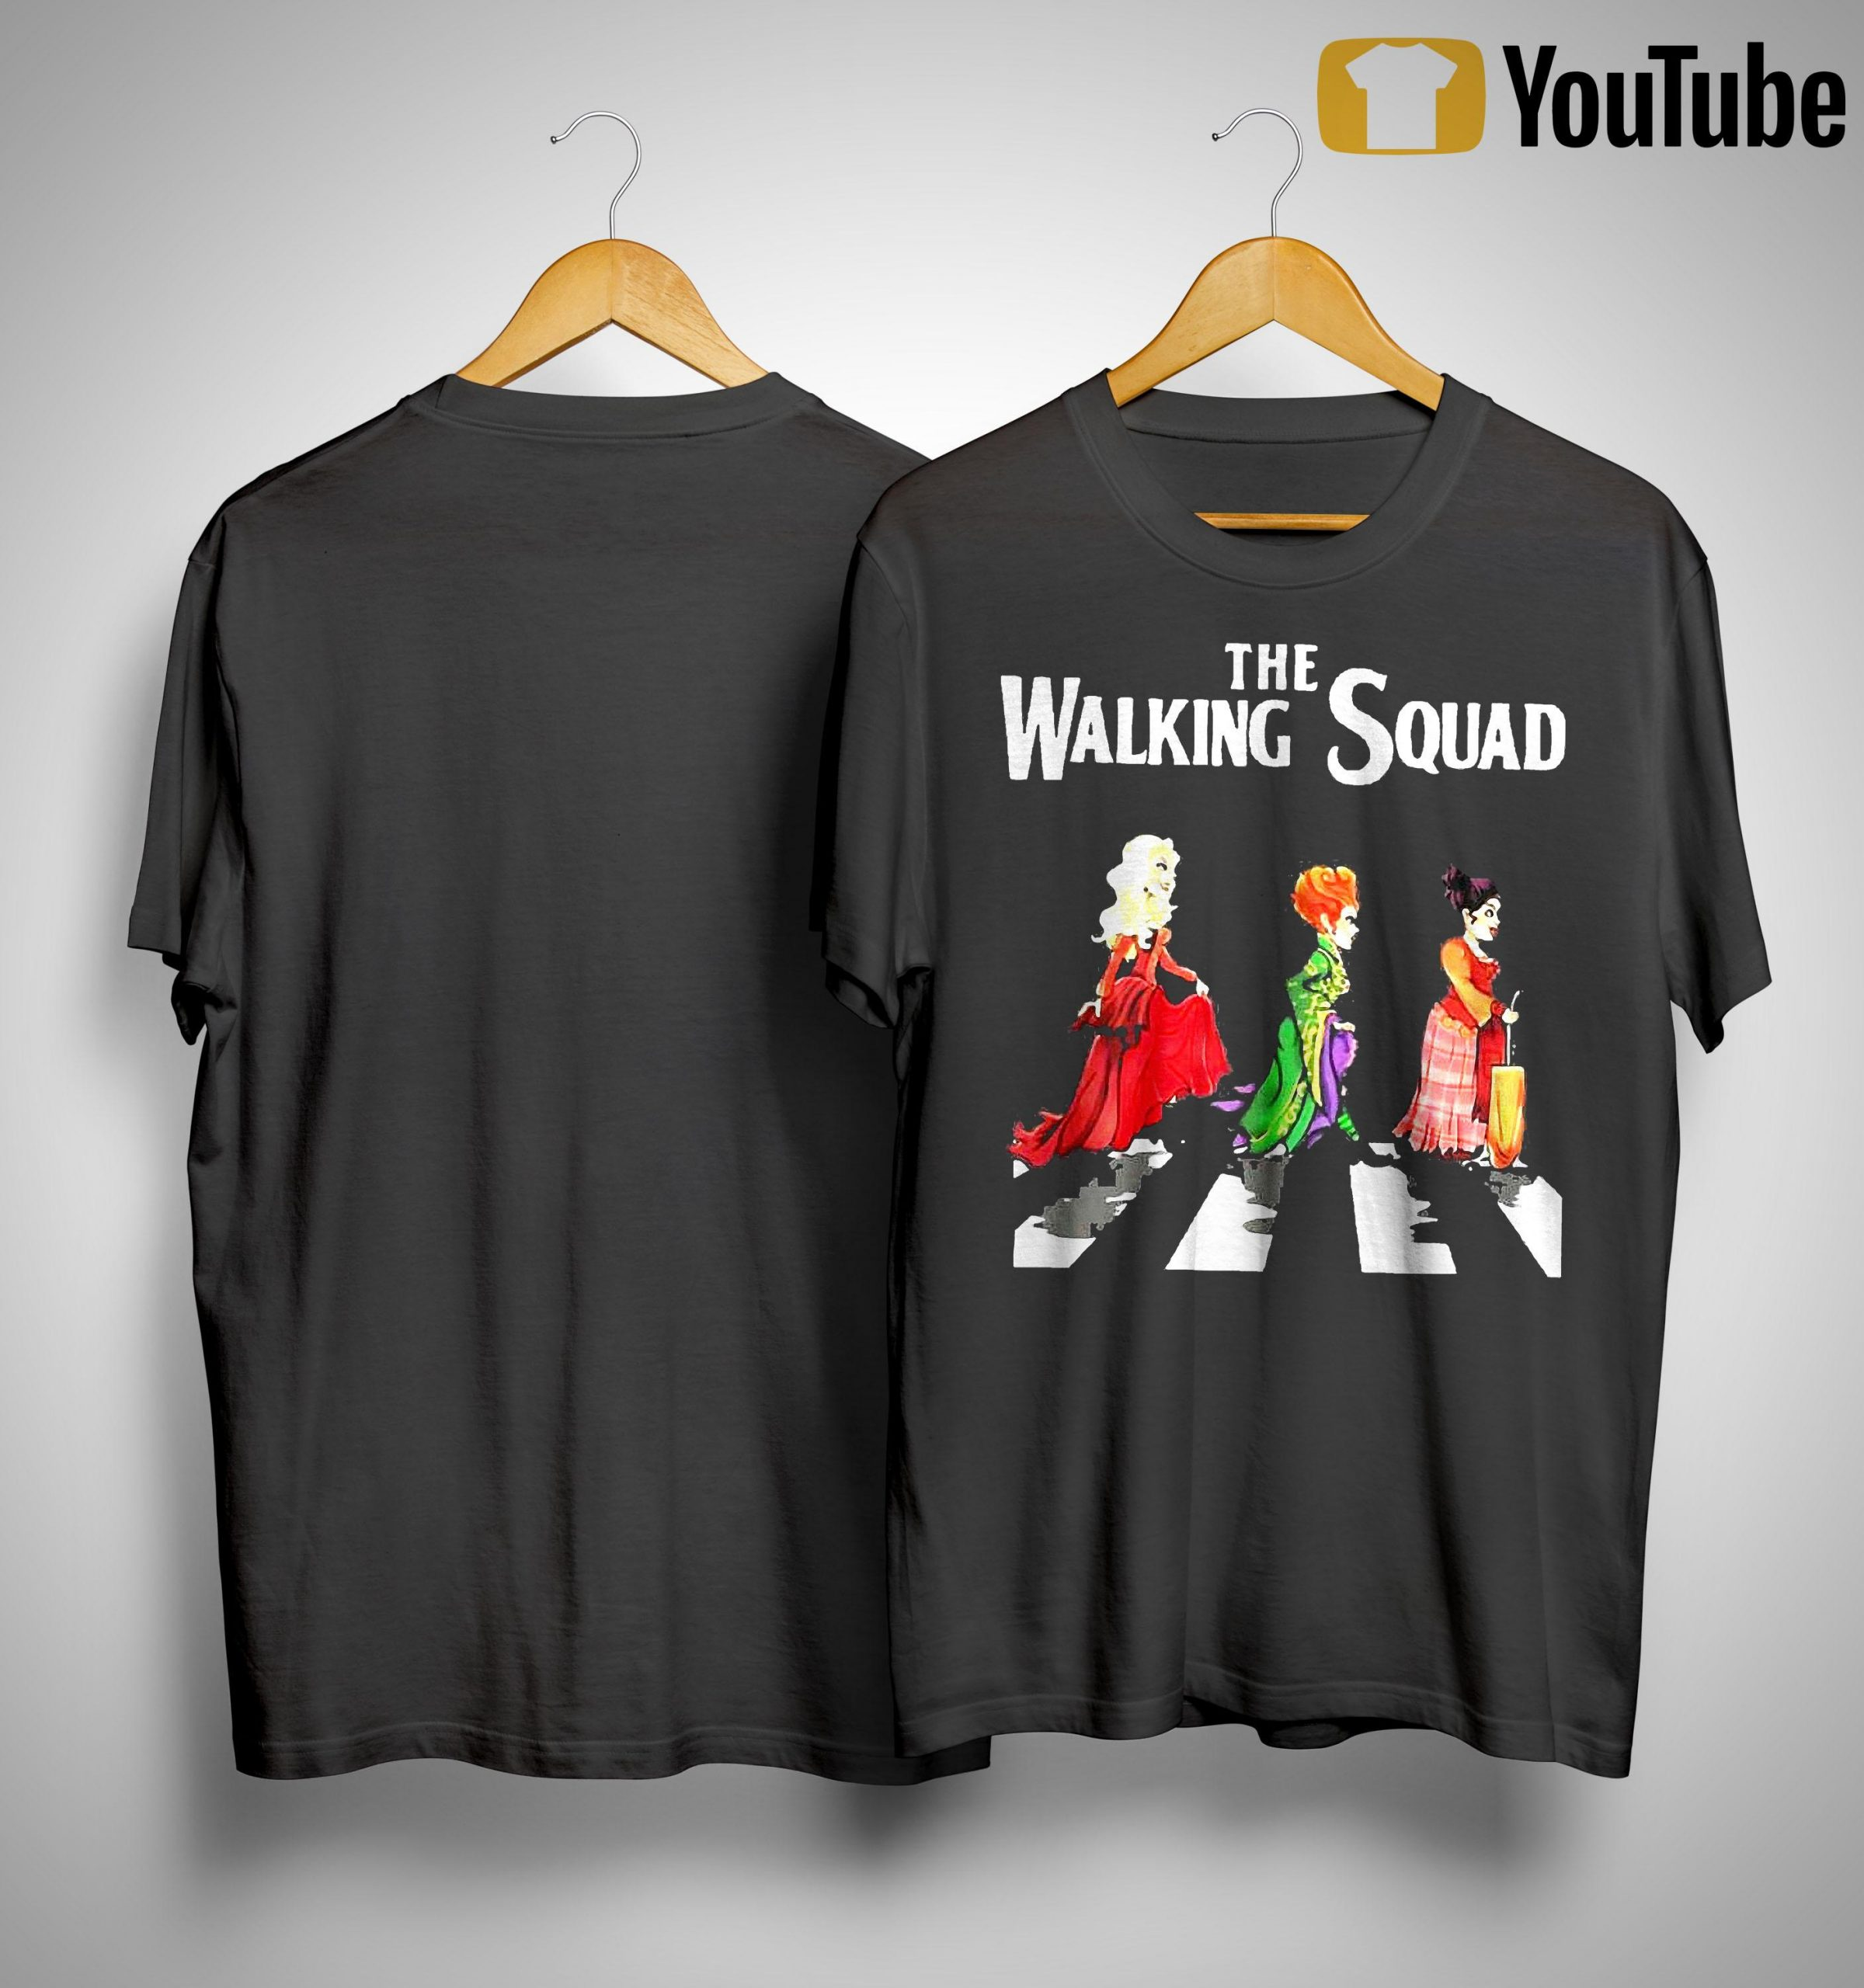 The Abbey Road The Walking Squad Shirt